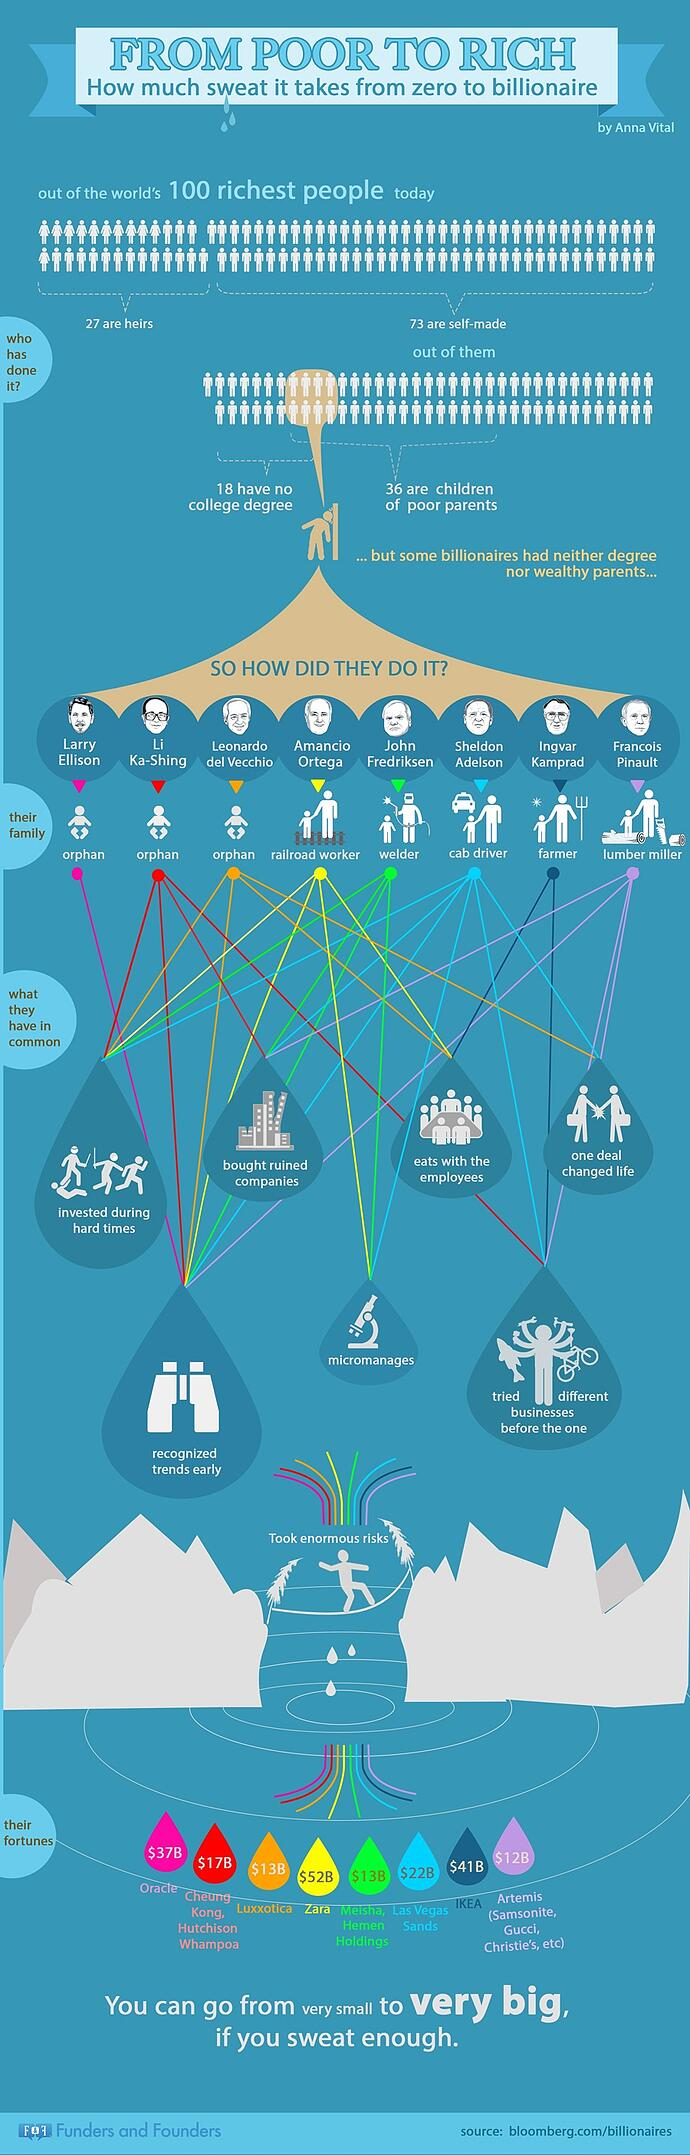 from-poor-to-rich-billionare-infographic.jpg